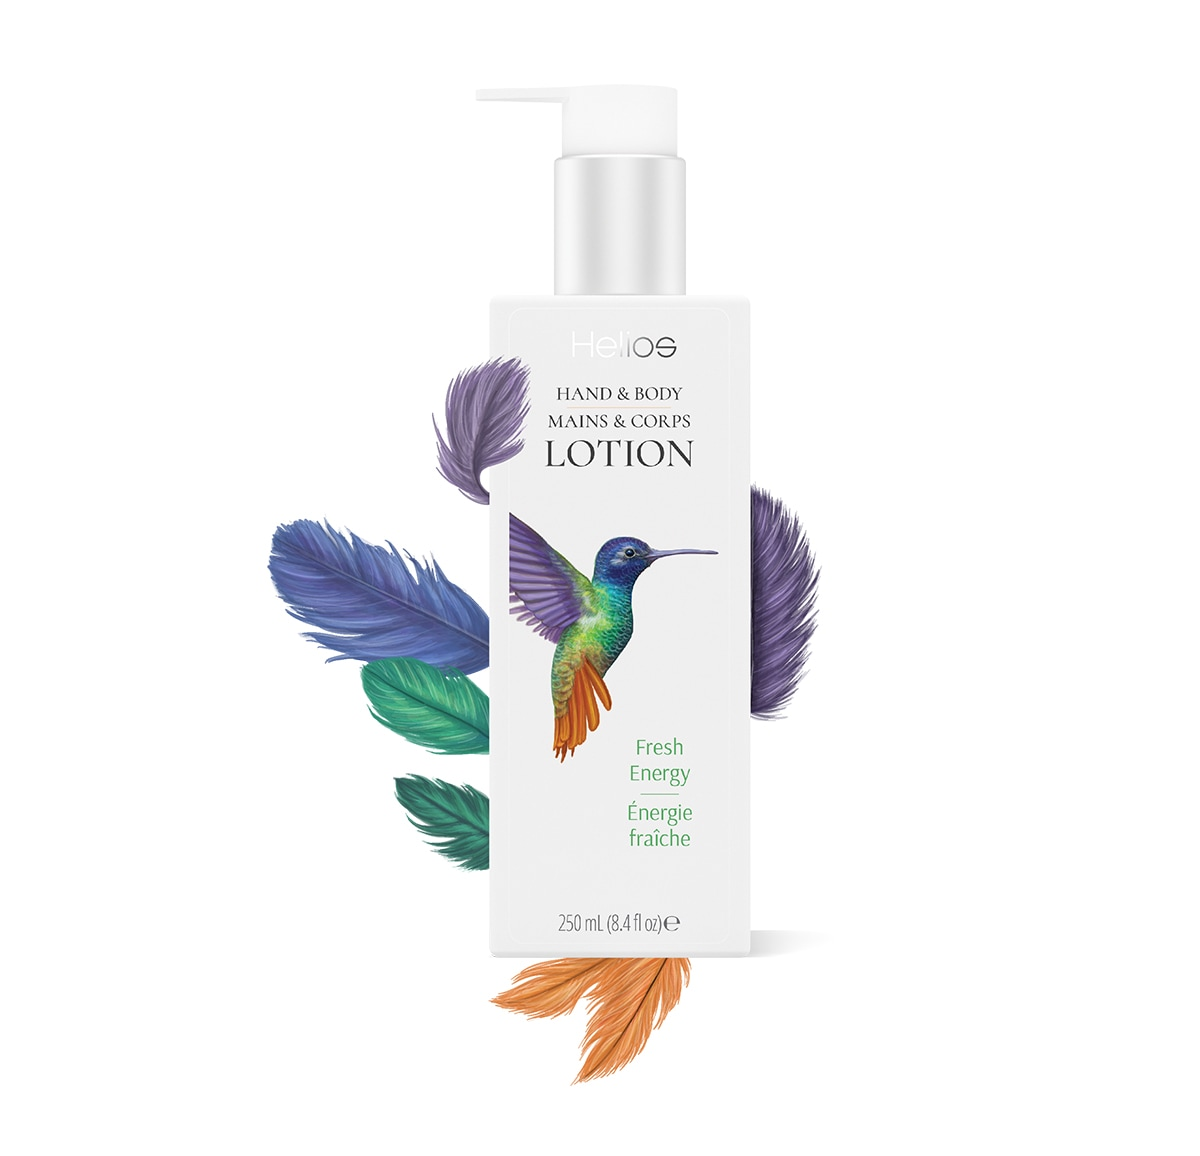 ILlustrations for packaging design. Helios lotion